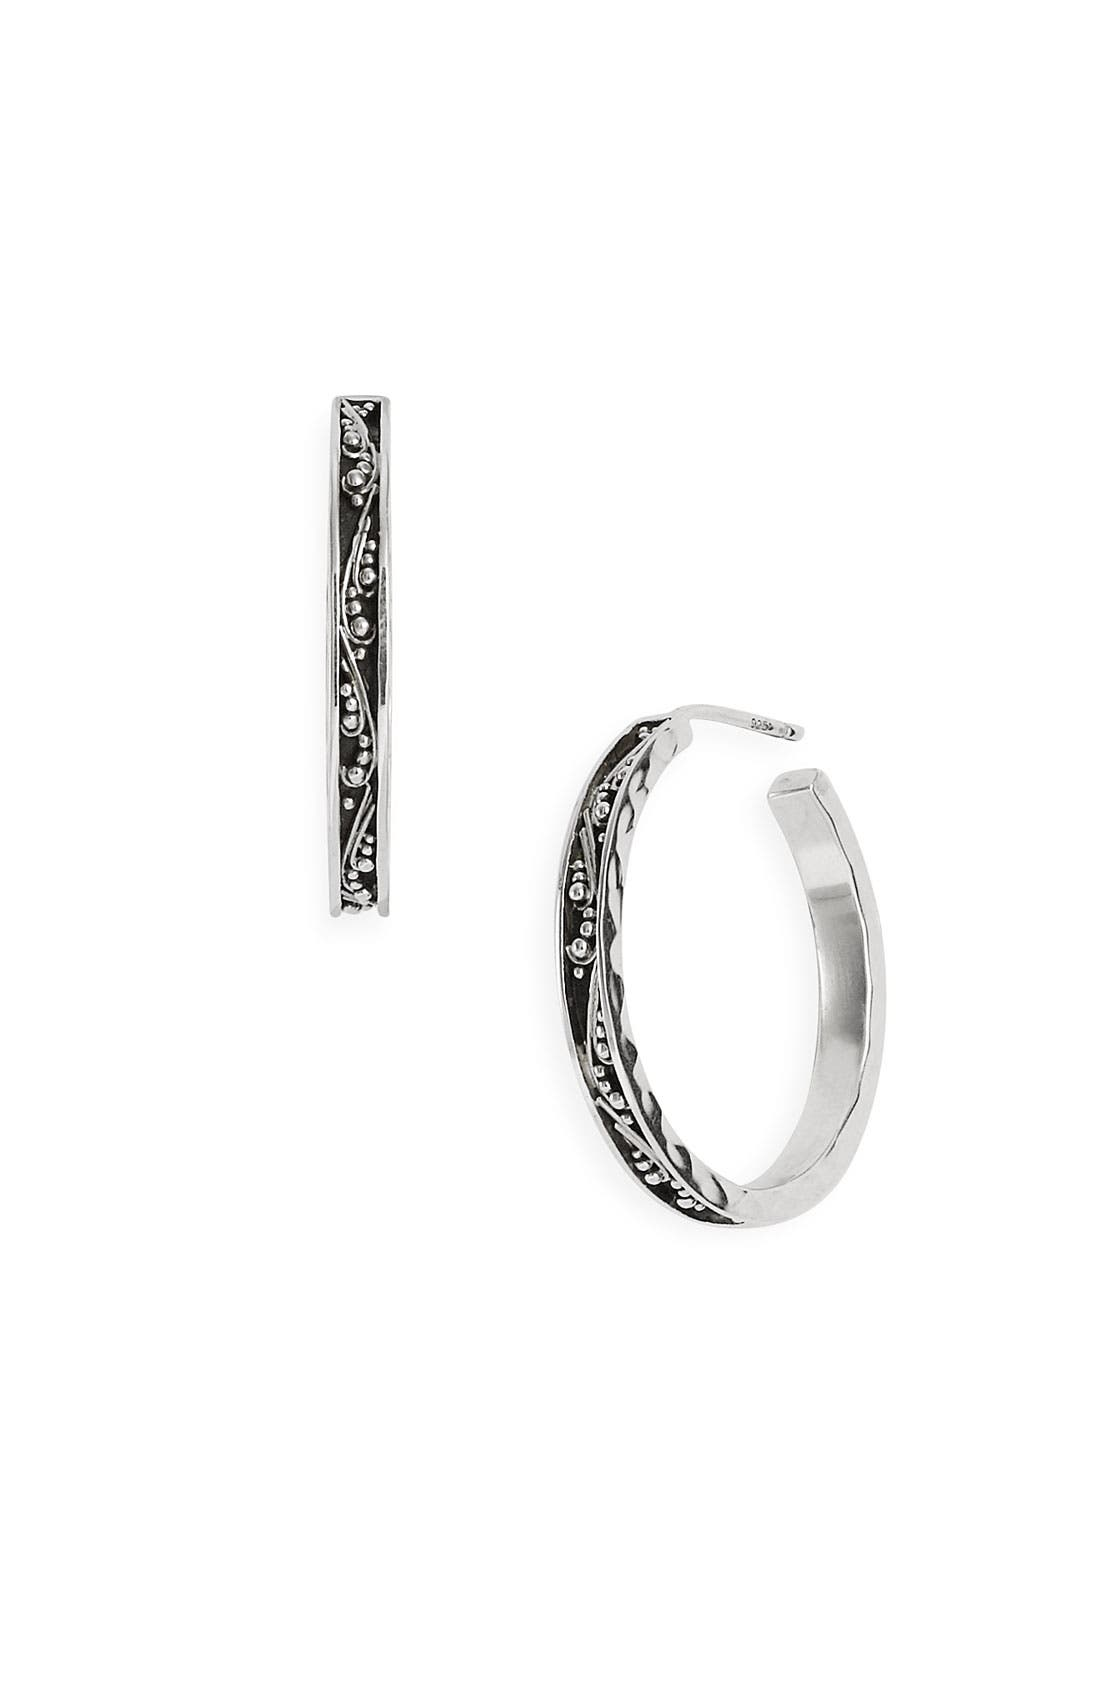 Main Image - Lois Hill 'Classics' Thin Small Hoop Earrings